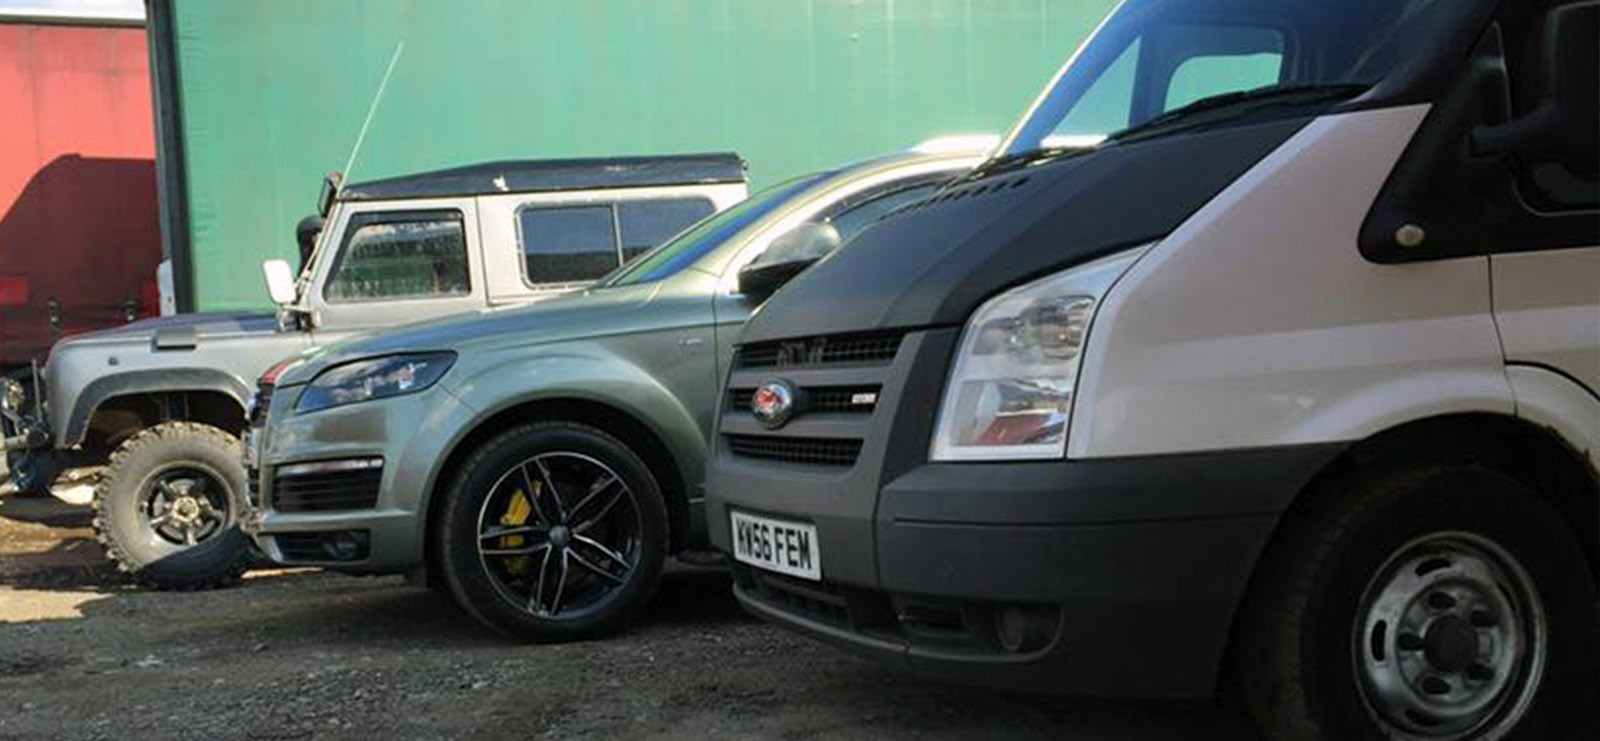 MOT Testing Station in Dudley | MOT Servicing Centre in Dudley